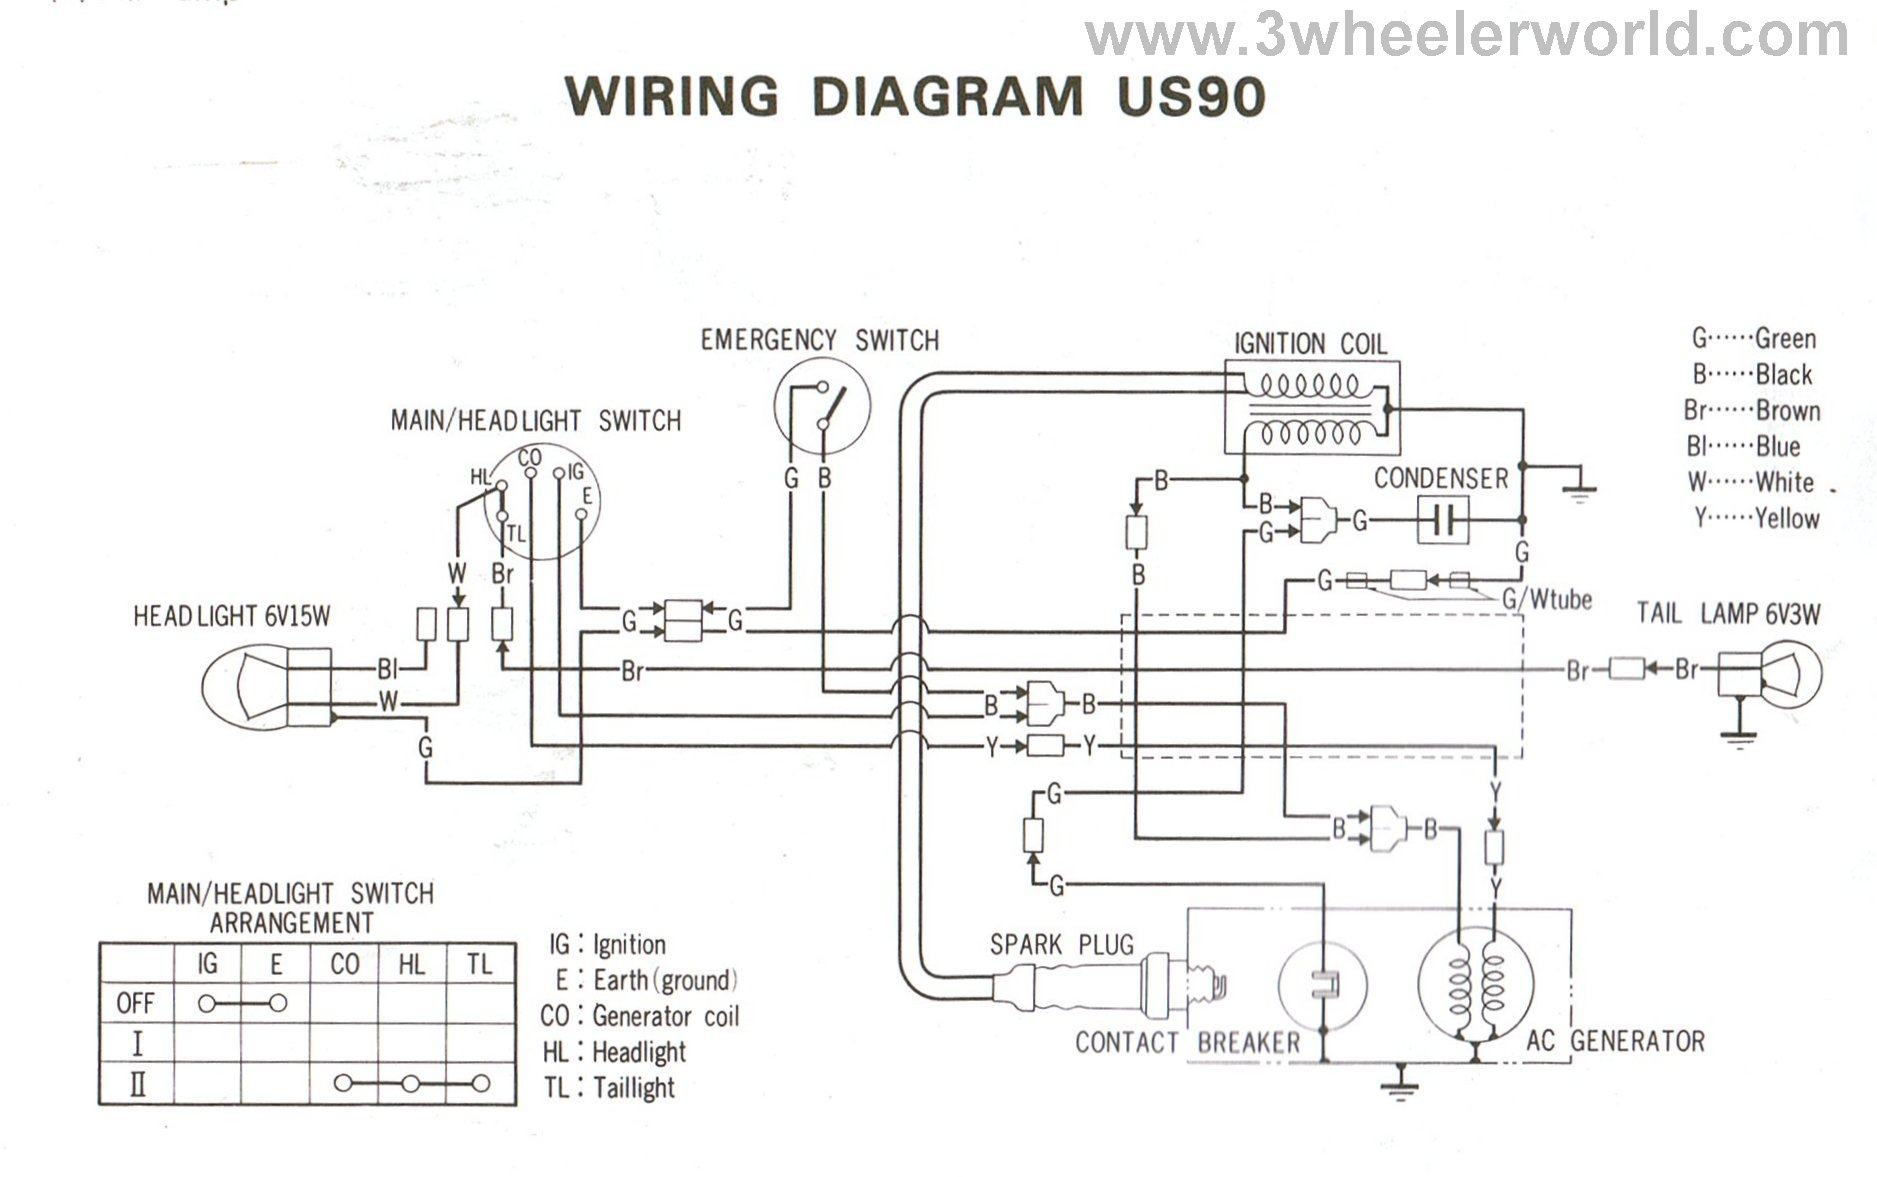 US90HM 3 wheeler world tech help honda wiring diagrams  at honlapkeszites.co